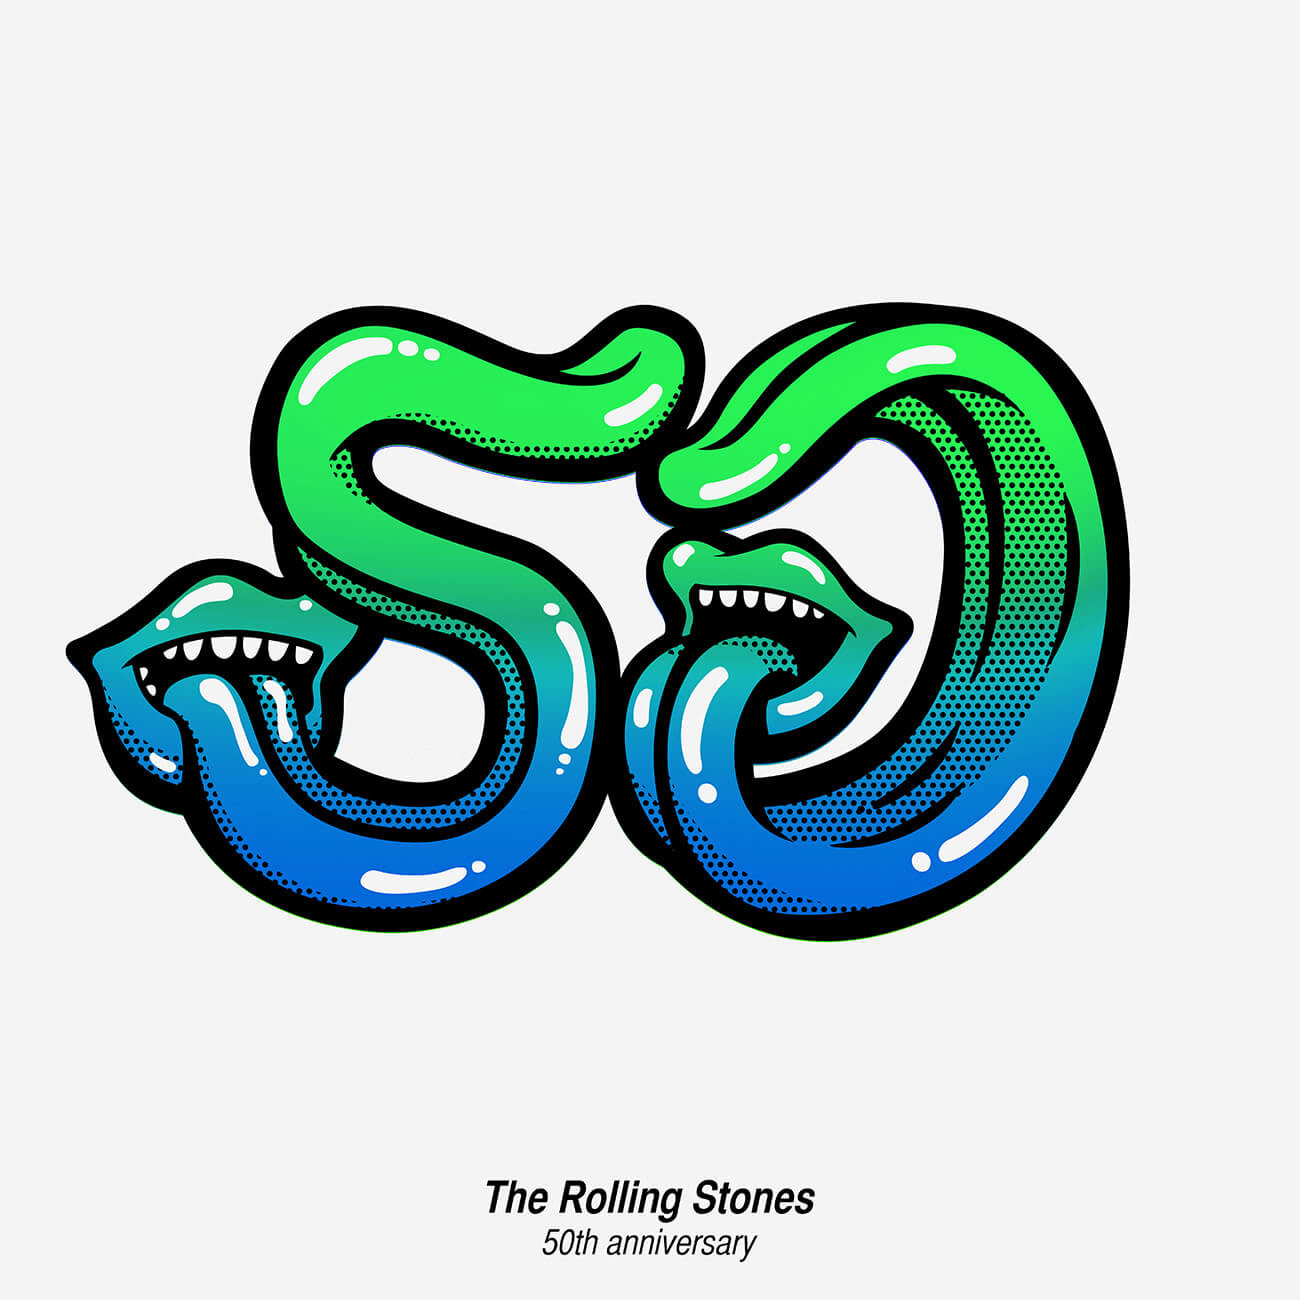 The Rolling Stones | 50th Anniversary